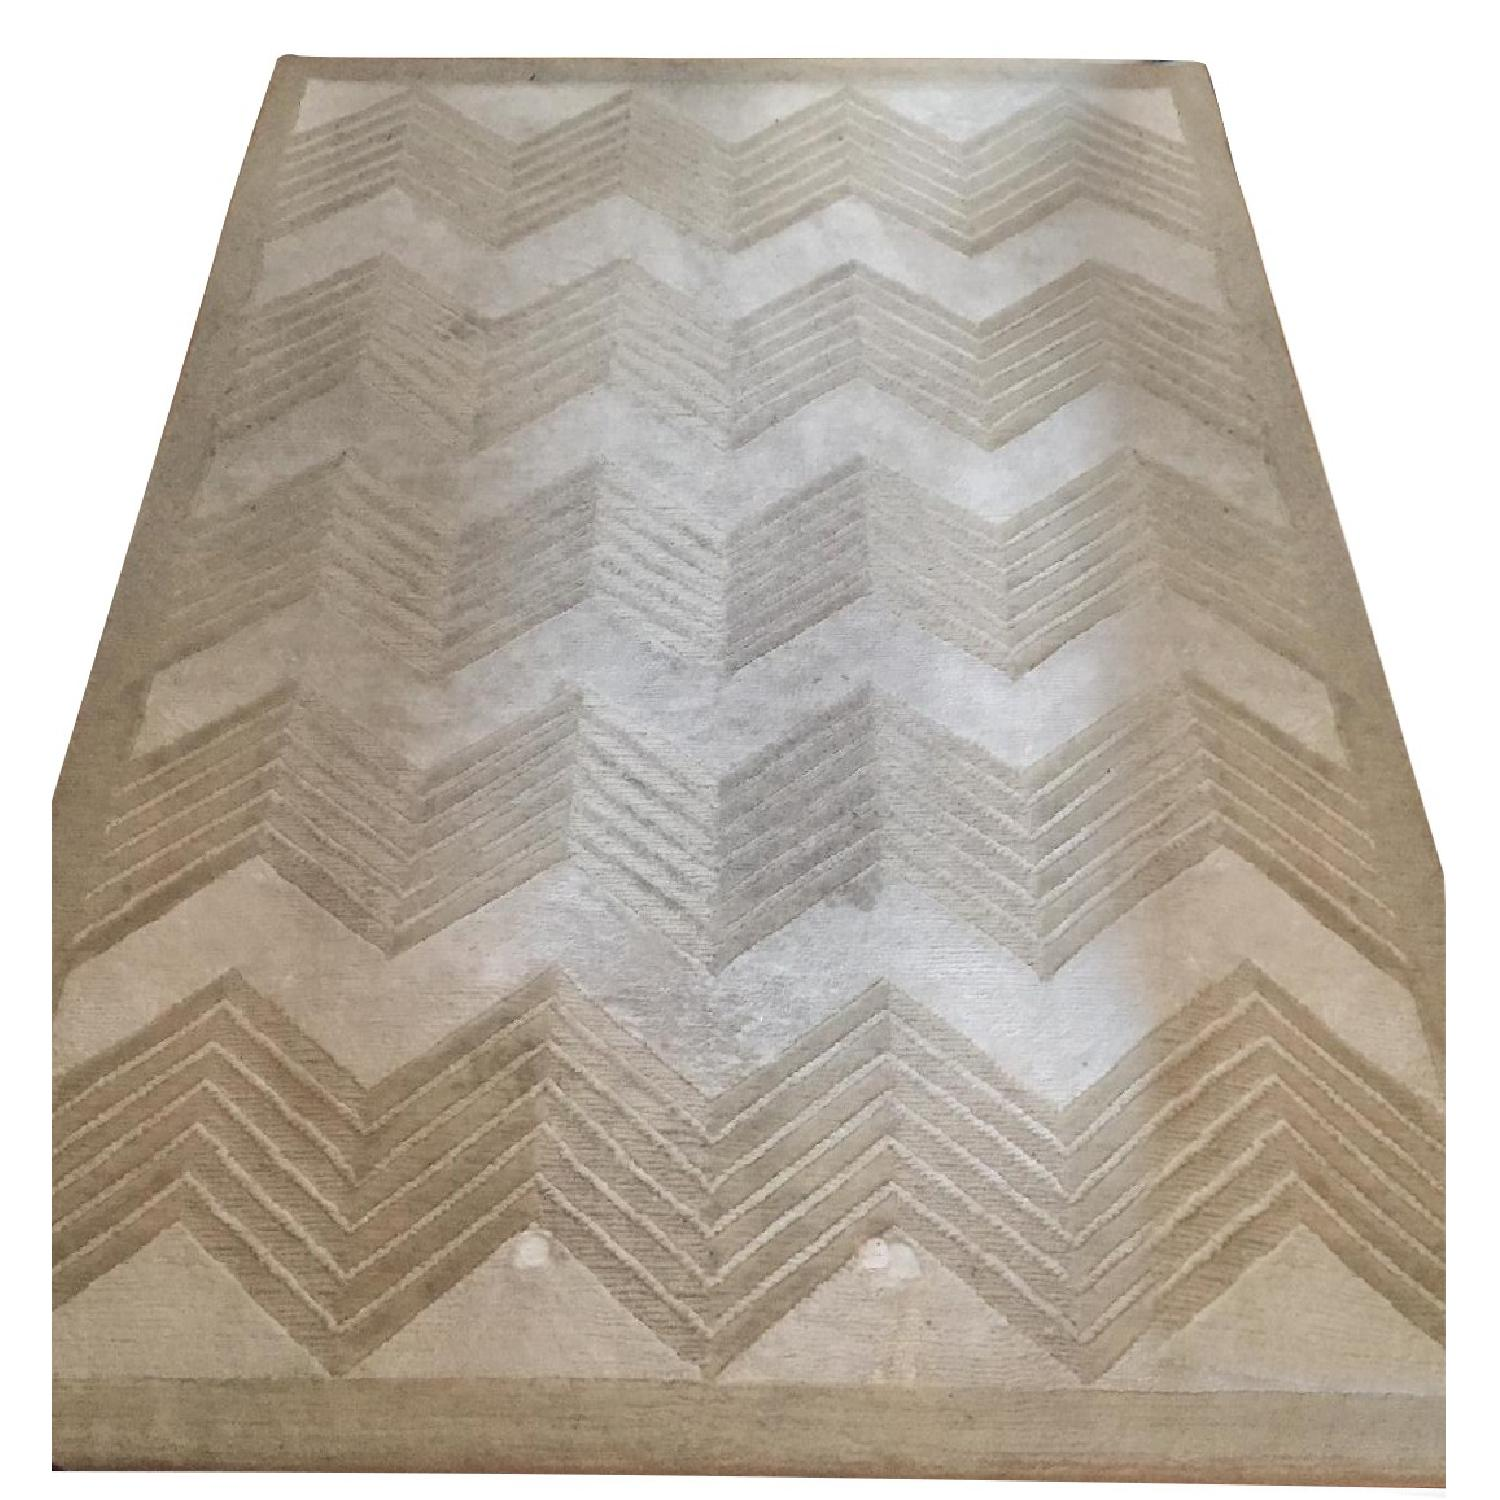 Ralph Lauren Area Rug on waterford area rugs, chanel area rugs, kate spade area rugs, horchow area rugs, jonathan adler area rugs, suzanne kasler area rugs, nina campbell area rugs, z gallerie area rugs, lexington area rugs, victoria hagan area rugs, barbara barry area rugs,